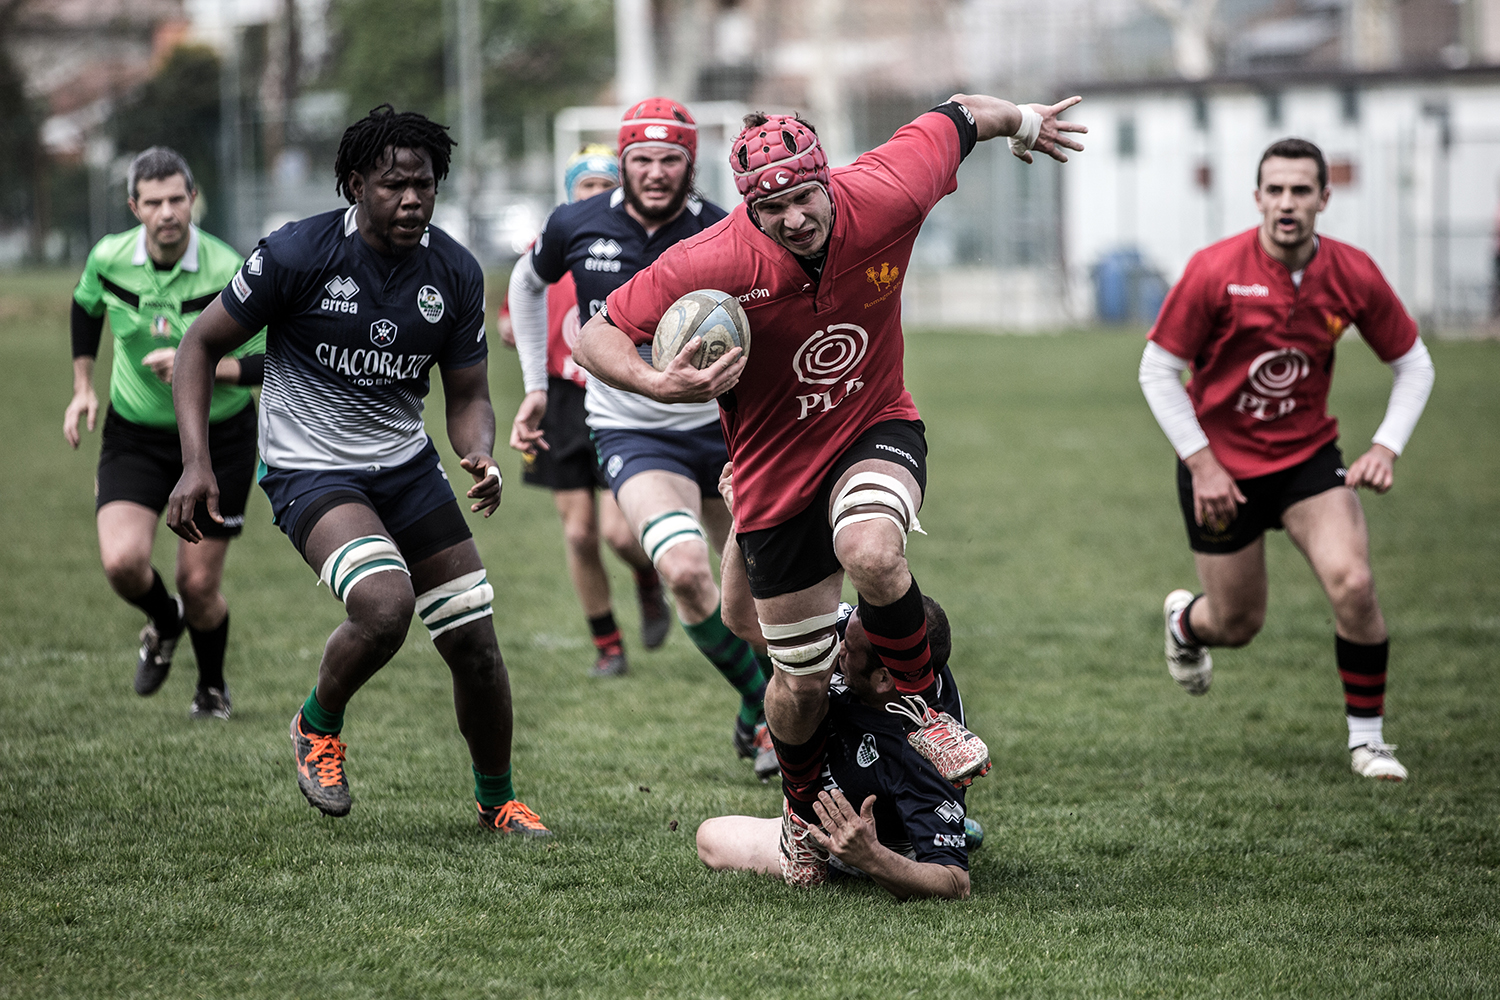 rugby_photograph_15.jpg